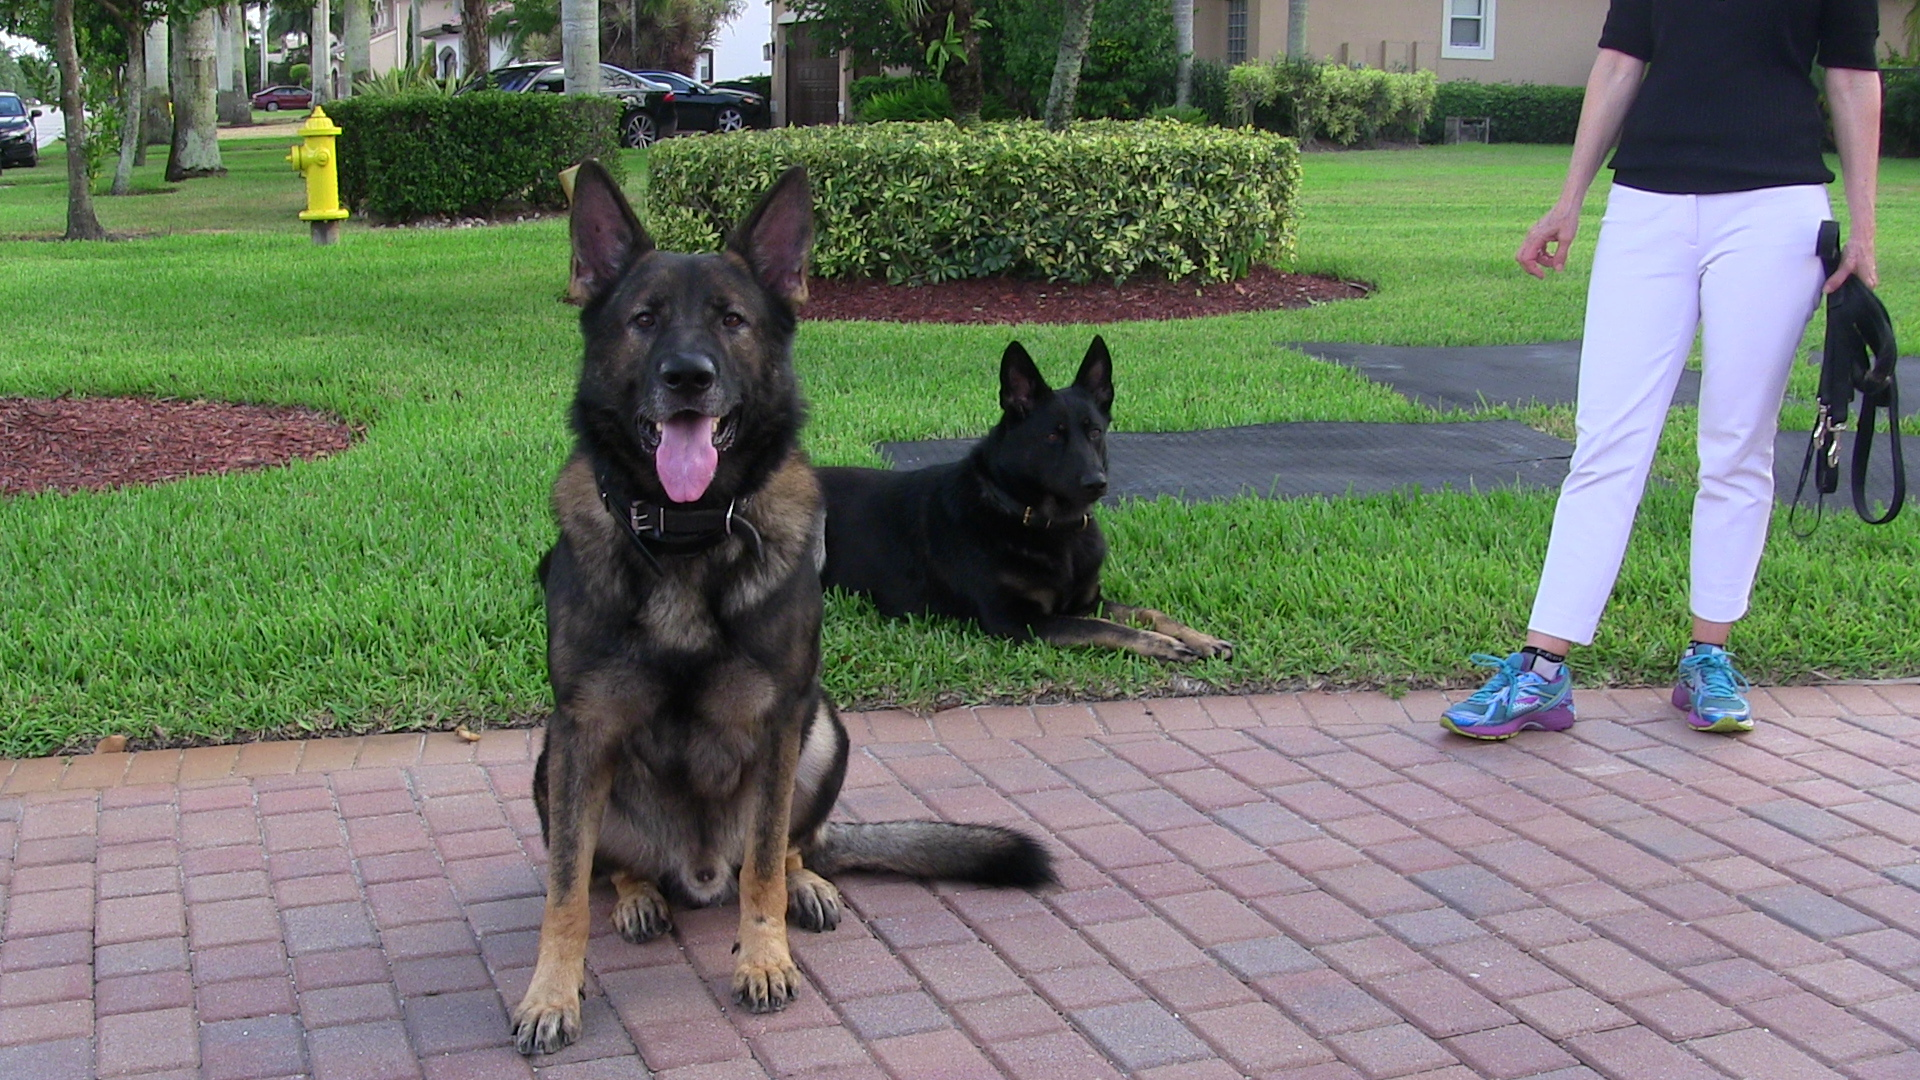 Richard Heinz, Miami Dog Whisperer, Dog trainer, dog behaviorist, dog trainer in miami, miami dog training, doral dog training, dog training expert, best dog trainer, aggression trainer, famous dog trainer, dog whisperer, protection K9 training, protection dog training, family protection dog, personal protection dog, german shepherd, dog training in miami, dog trainer in miami, doral dog trainer, coral gables dog trainer, miami beach dog trainer, dog trianer to the stars, positive dog training, obedience dog training, free evaluation, dog trainer, miami dog whisperer